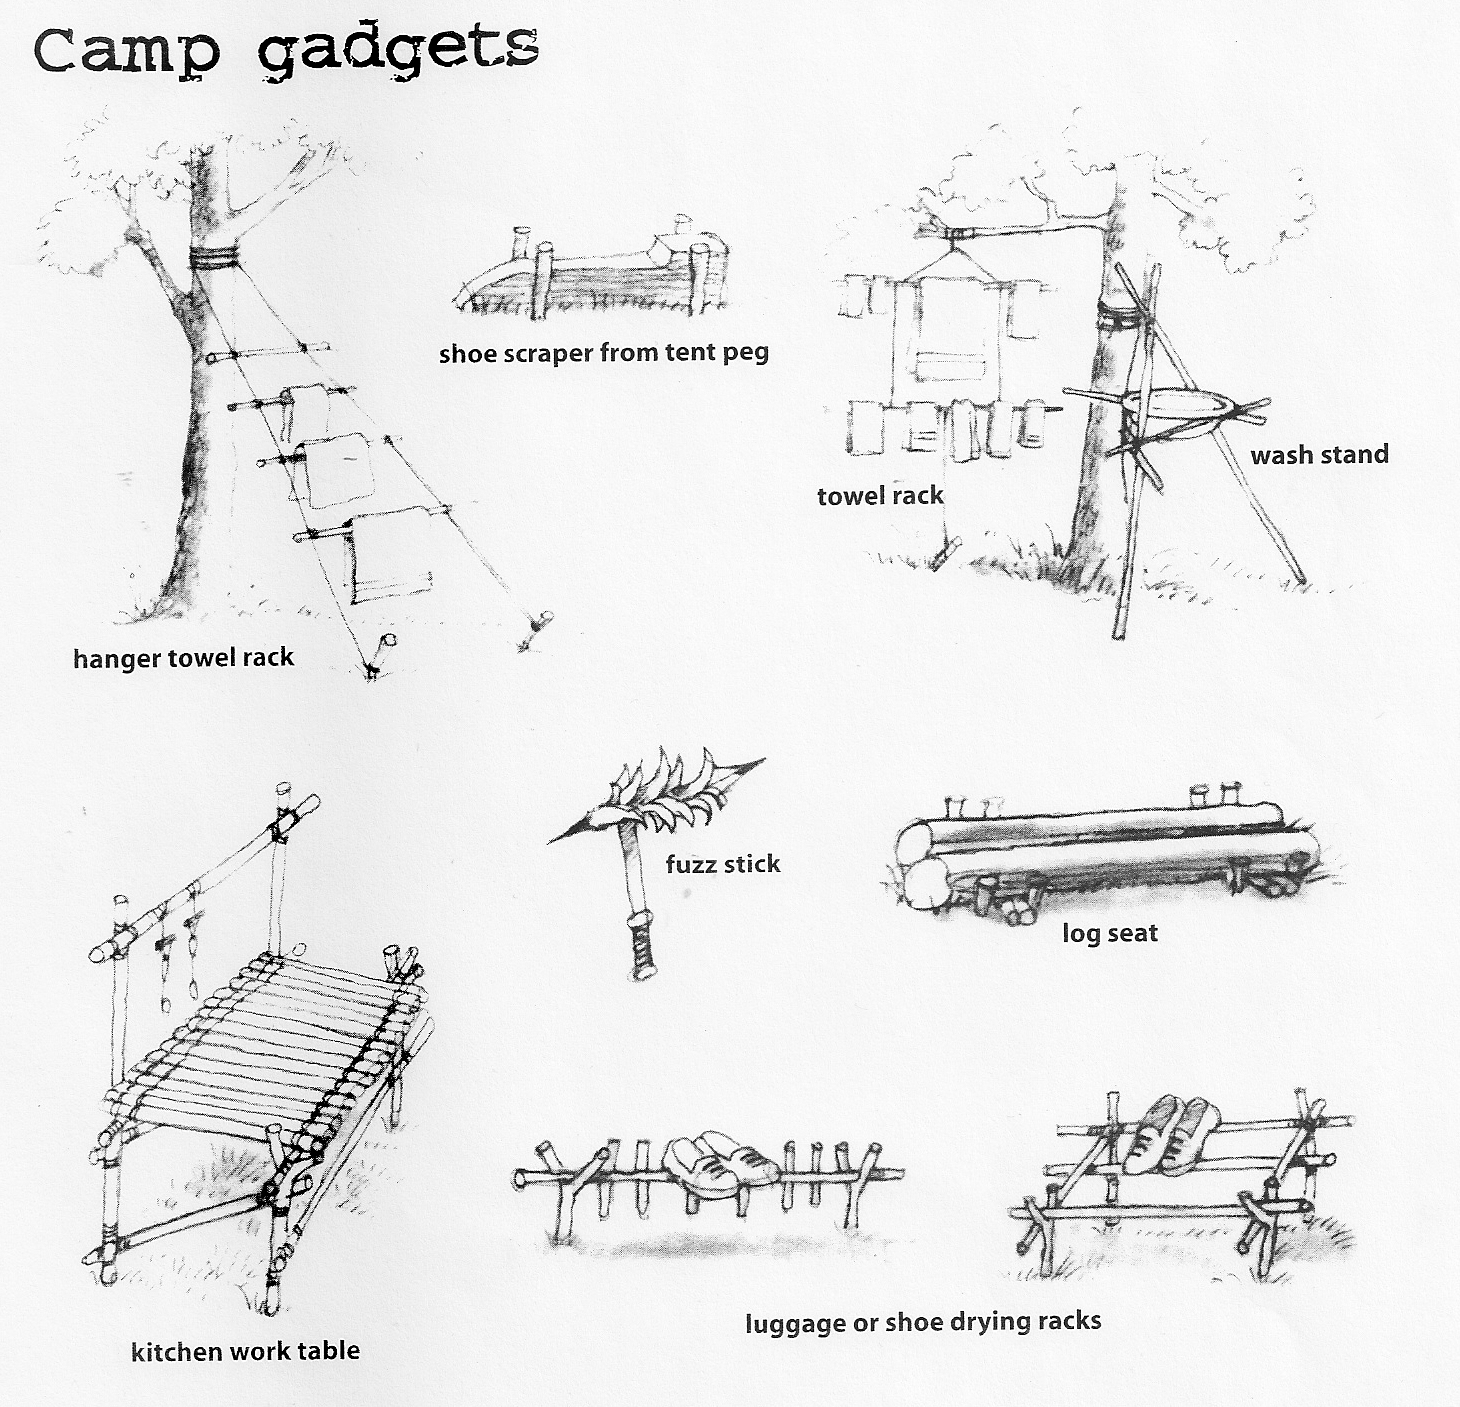 a canadian guider  camp gadgets